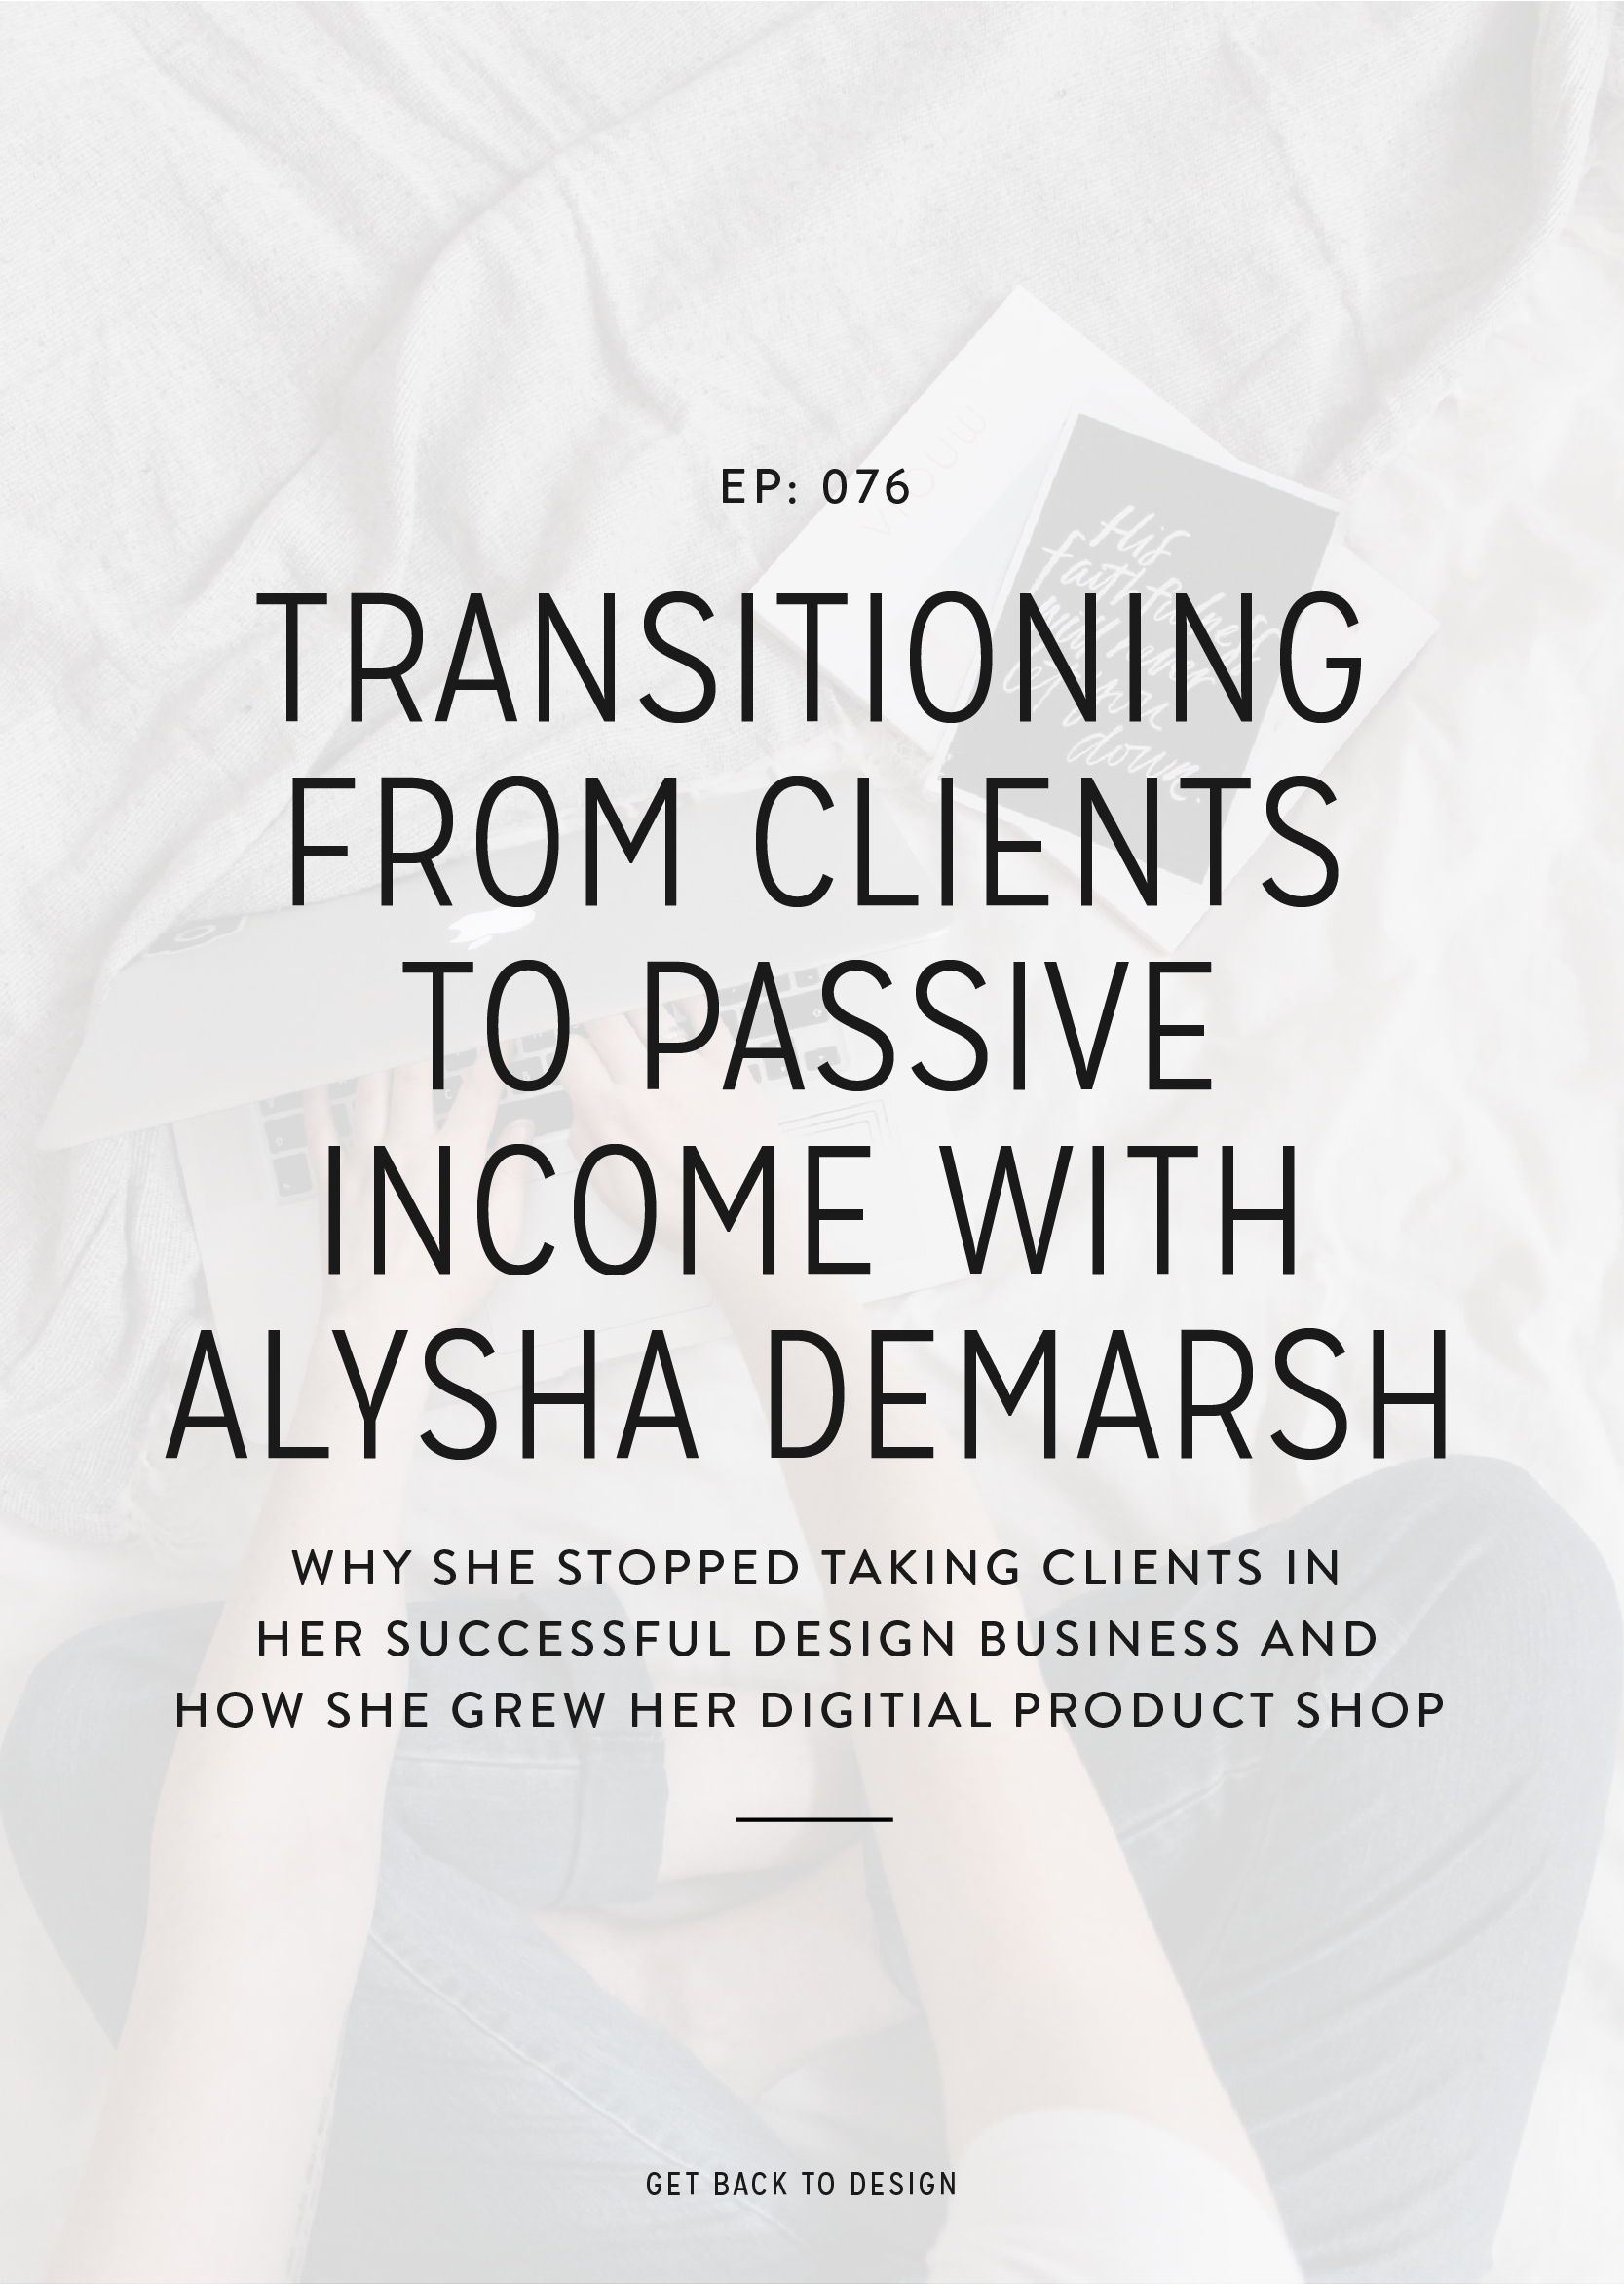 We know that many of you are curious about how you can make passive income or even transition your business to solely passive income, so we invited Alysha DeMarsh from Basil and Bark onto the show to talk about it more!